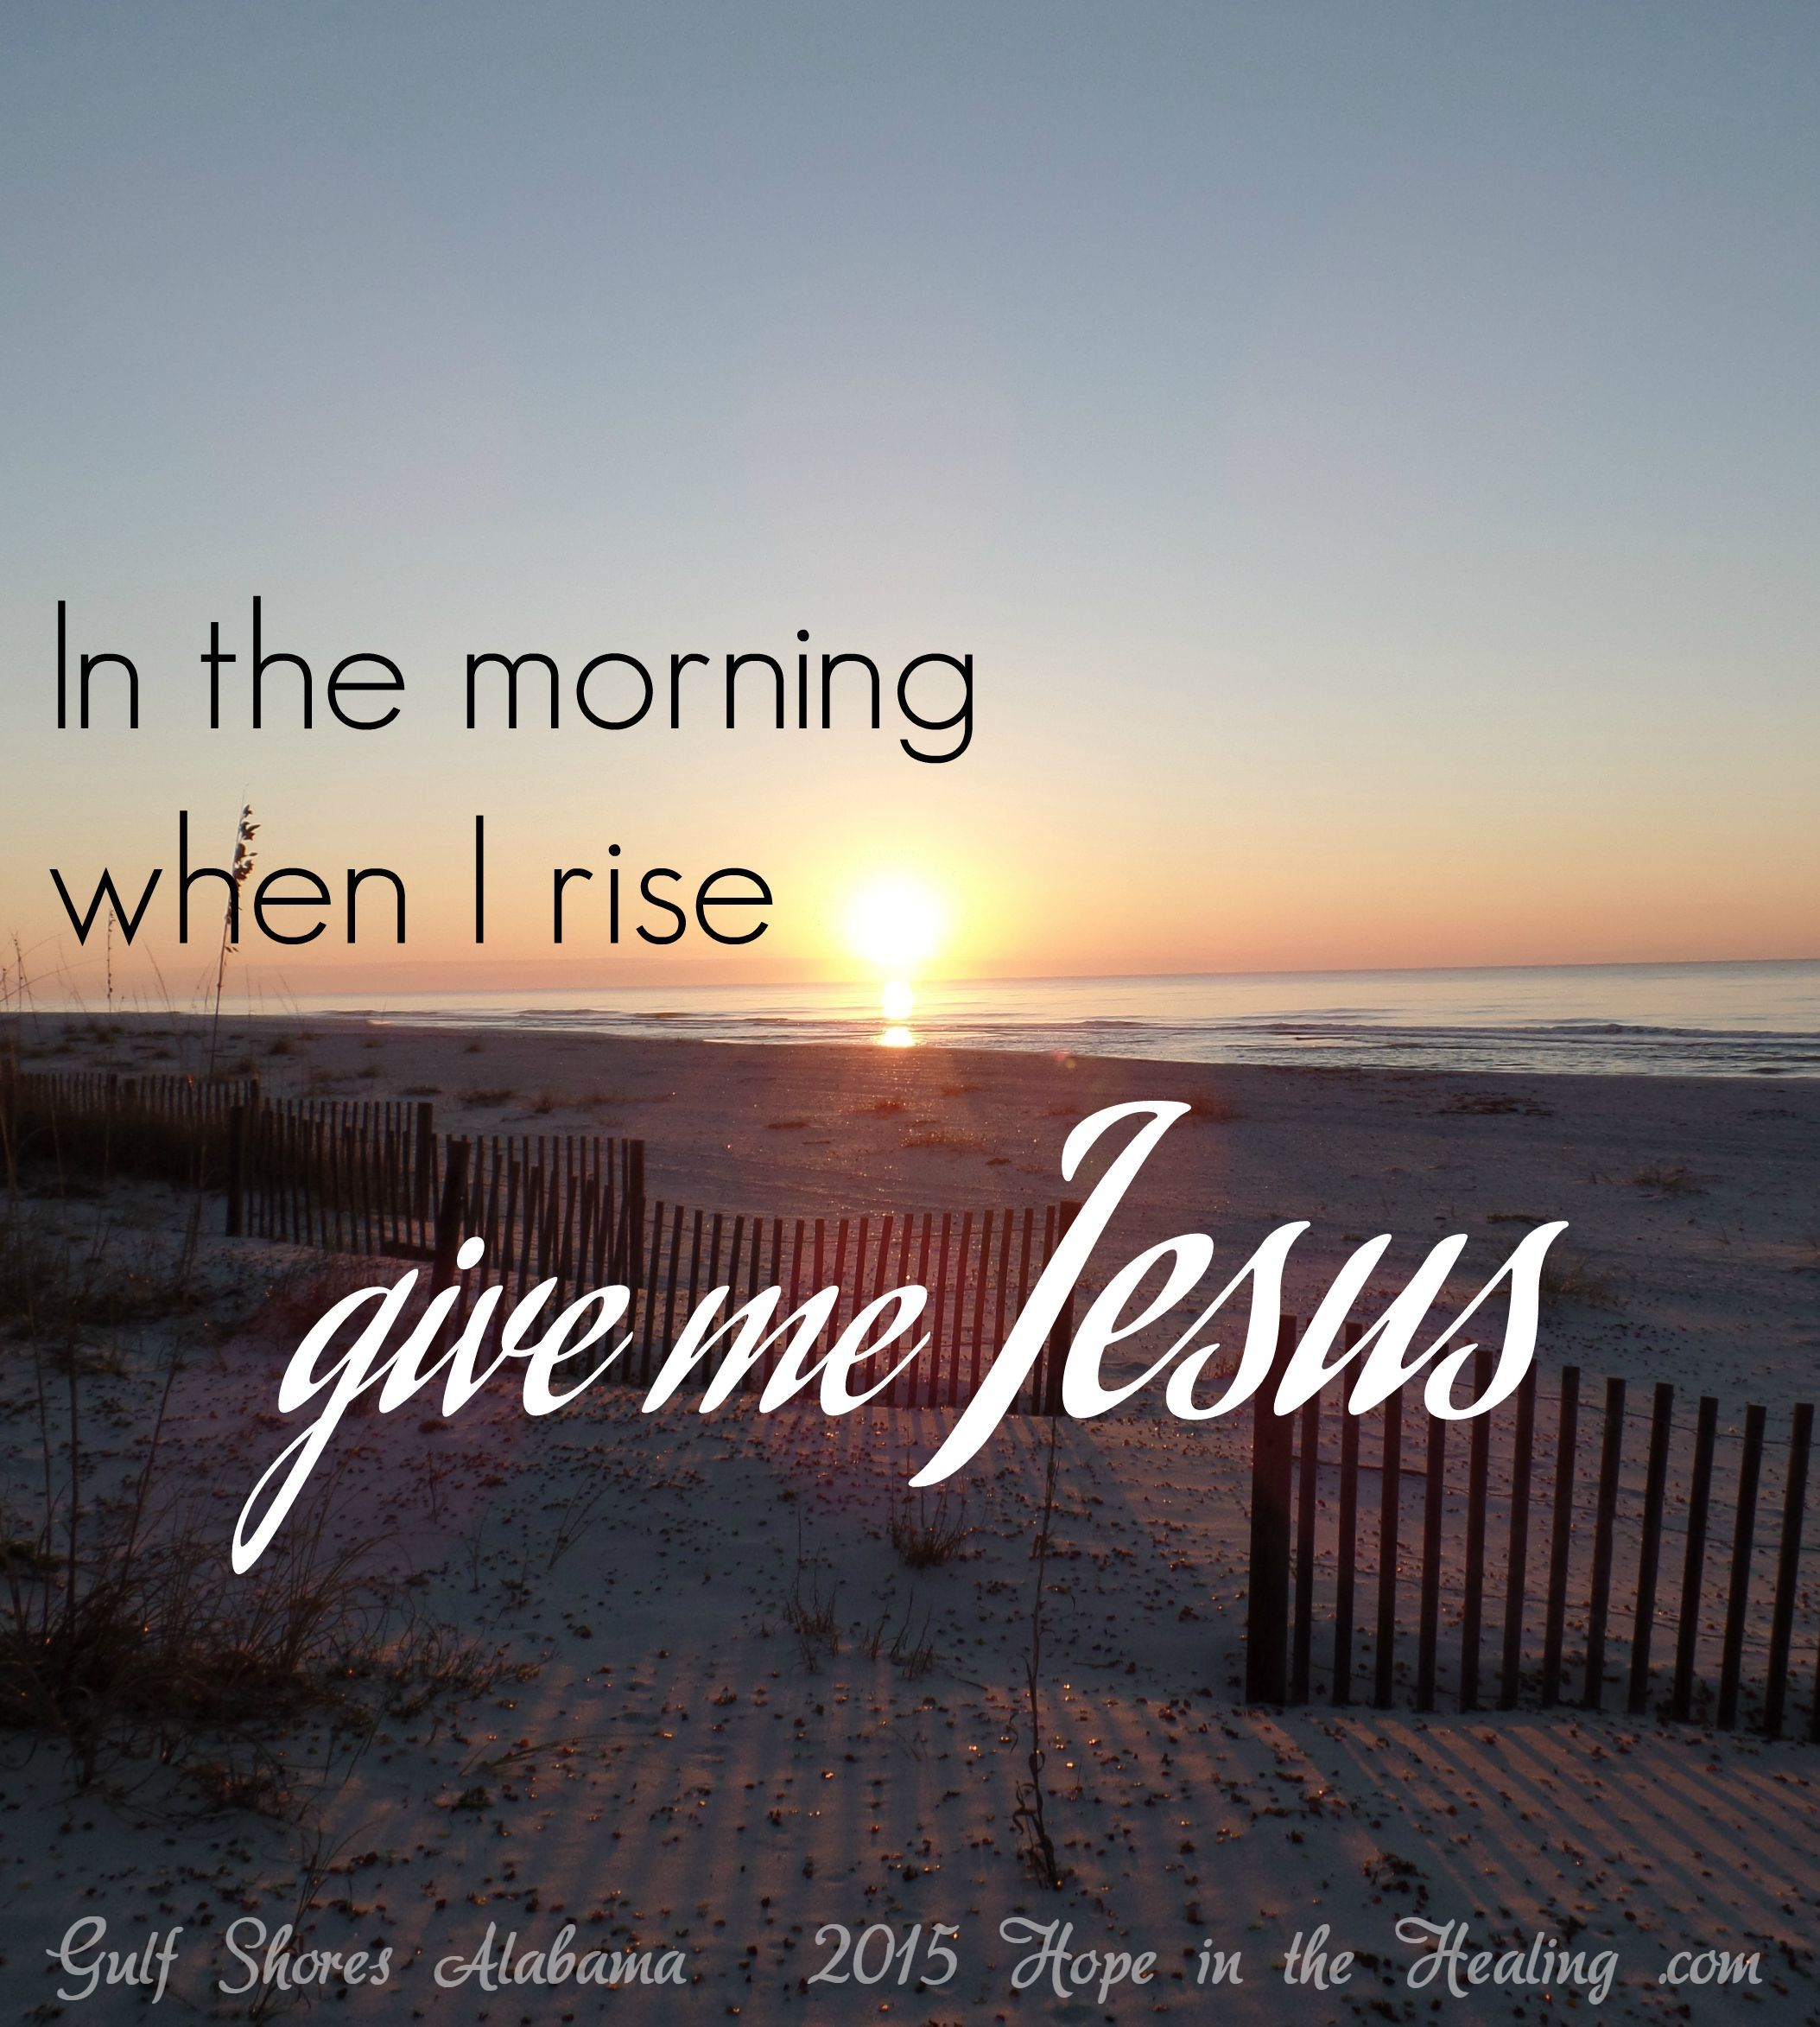 In the morning when I rise, give me Jesus!  HopeintheHealing.com